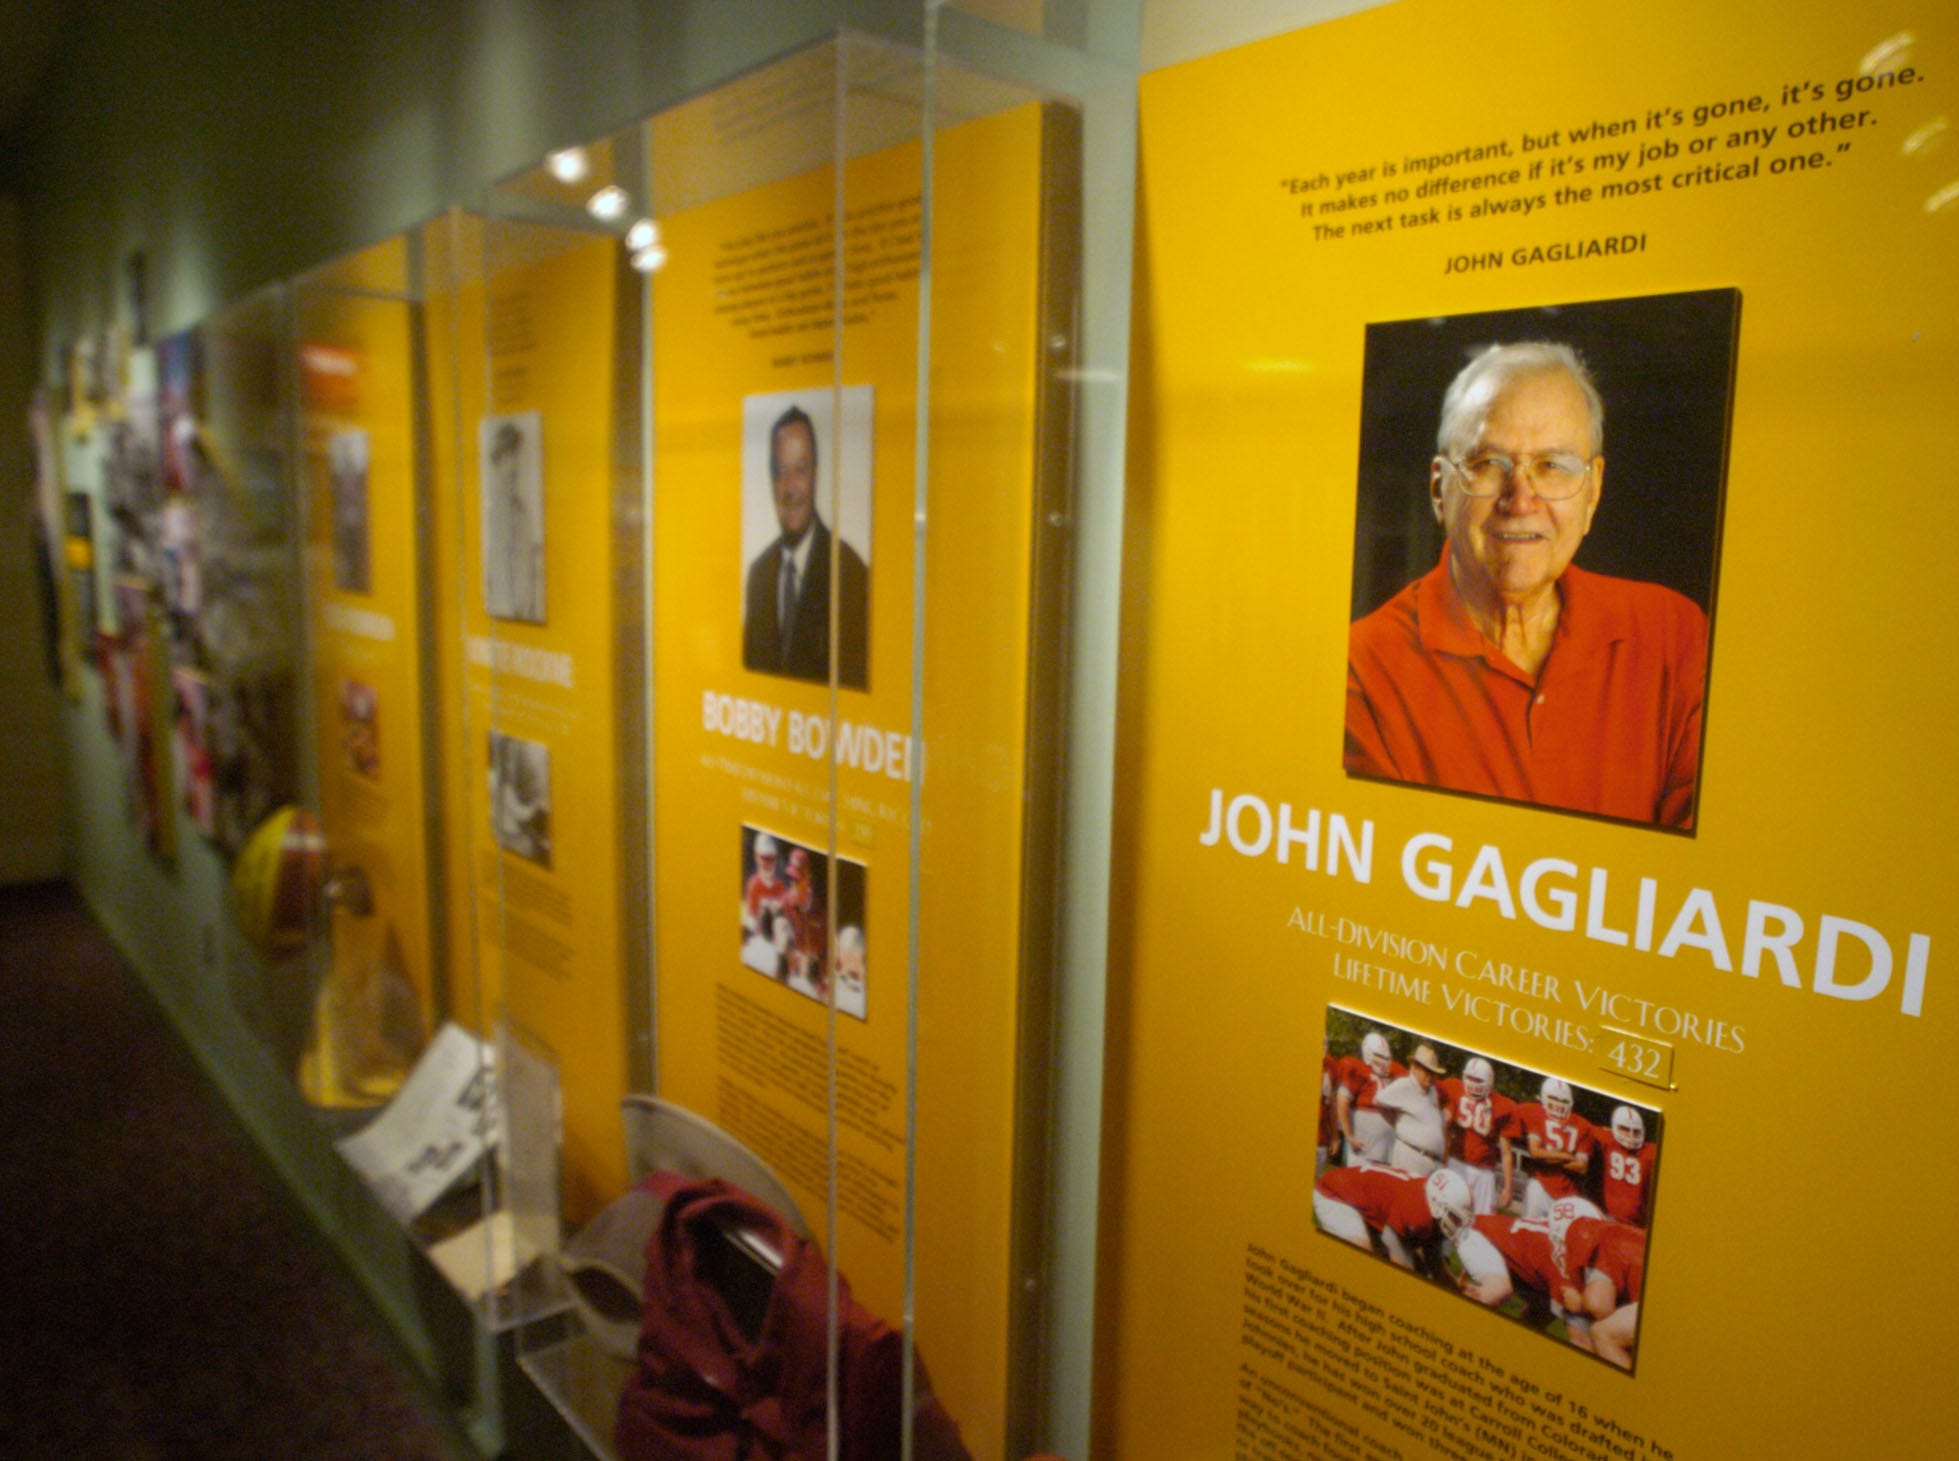 A display honoring St. John?s University head football coach John Gagliardi joins those of many other college football greats inside the College Football Hall of Fame in South Bend, Ind.